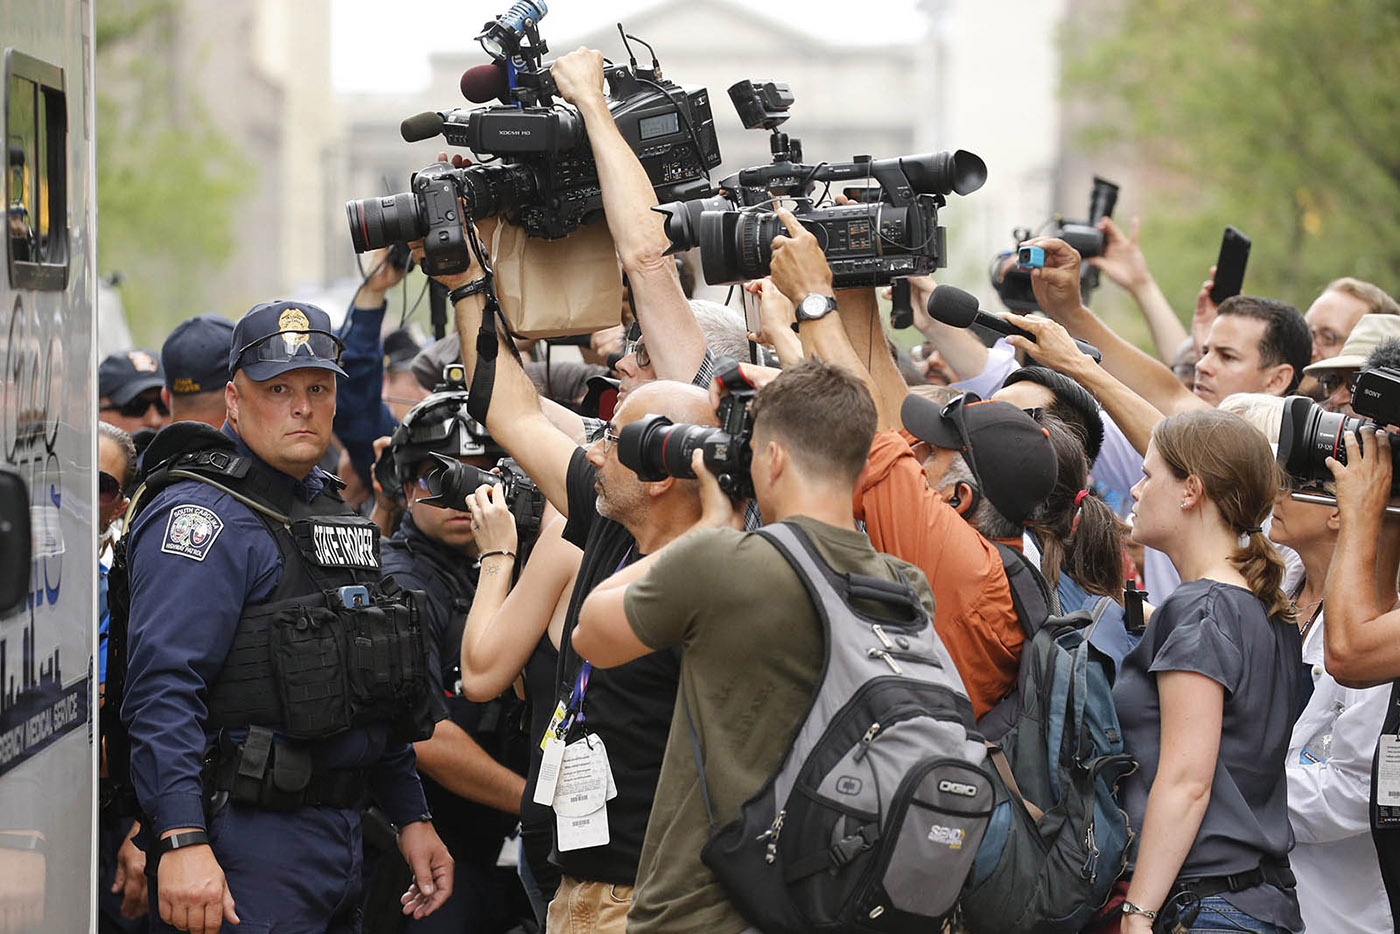 A South Carolina State Trooper is surrounded by news cameras as a protestor is detained in Cleveland, Ohio, Monday, July 18, 2016.  (Photo by Derek Gee)